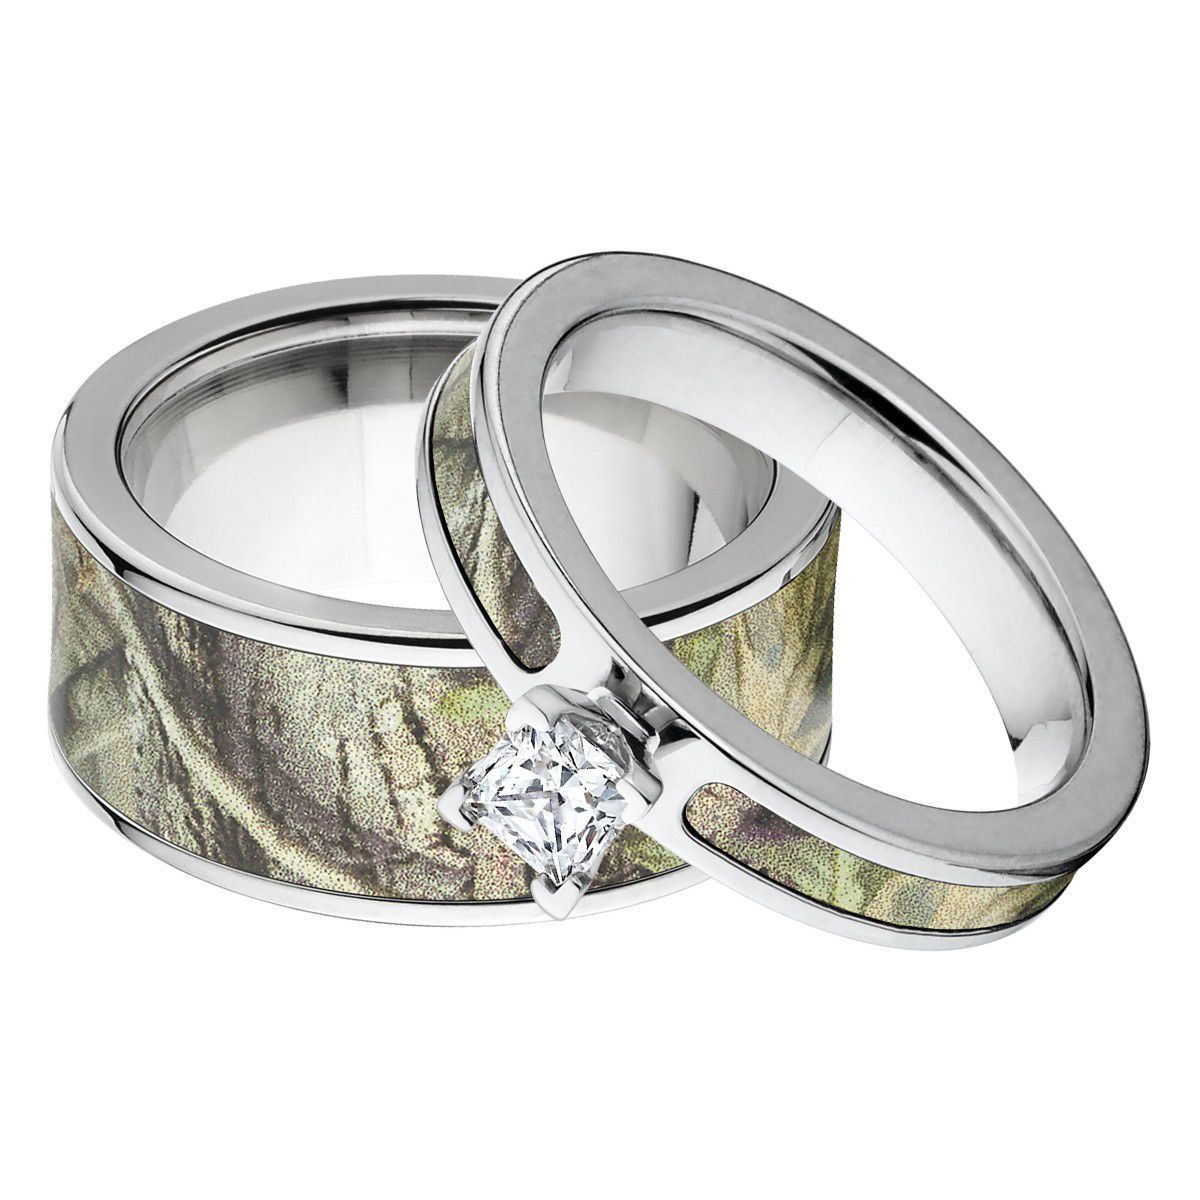 Realtree AP Green Matching Camo Ring Set for Him and Her